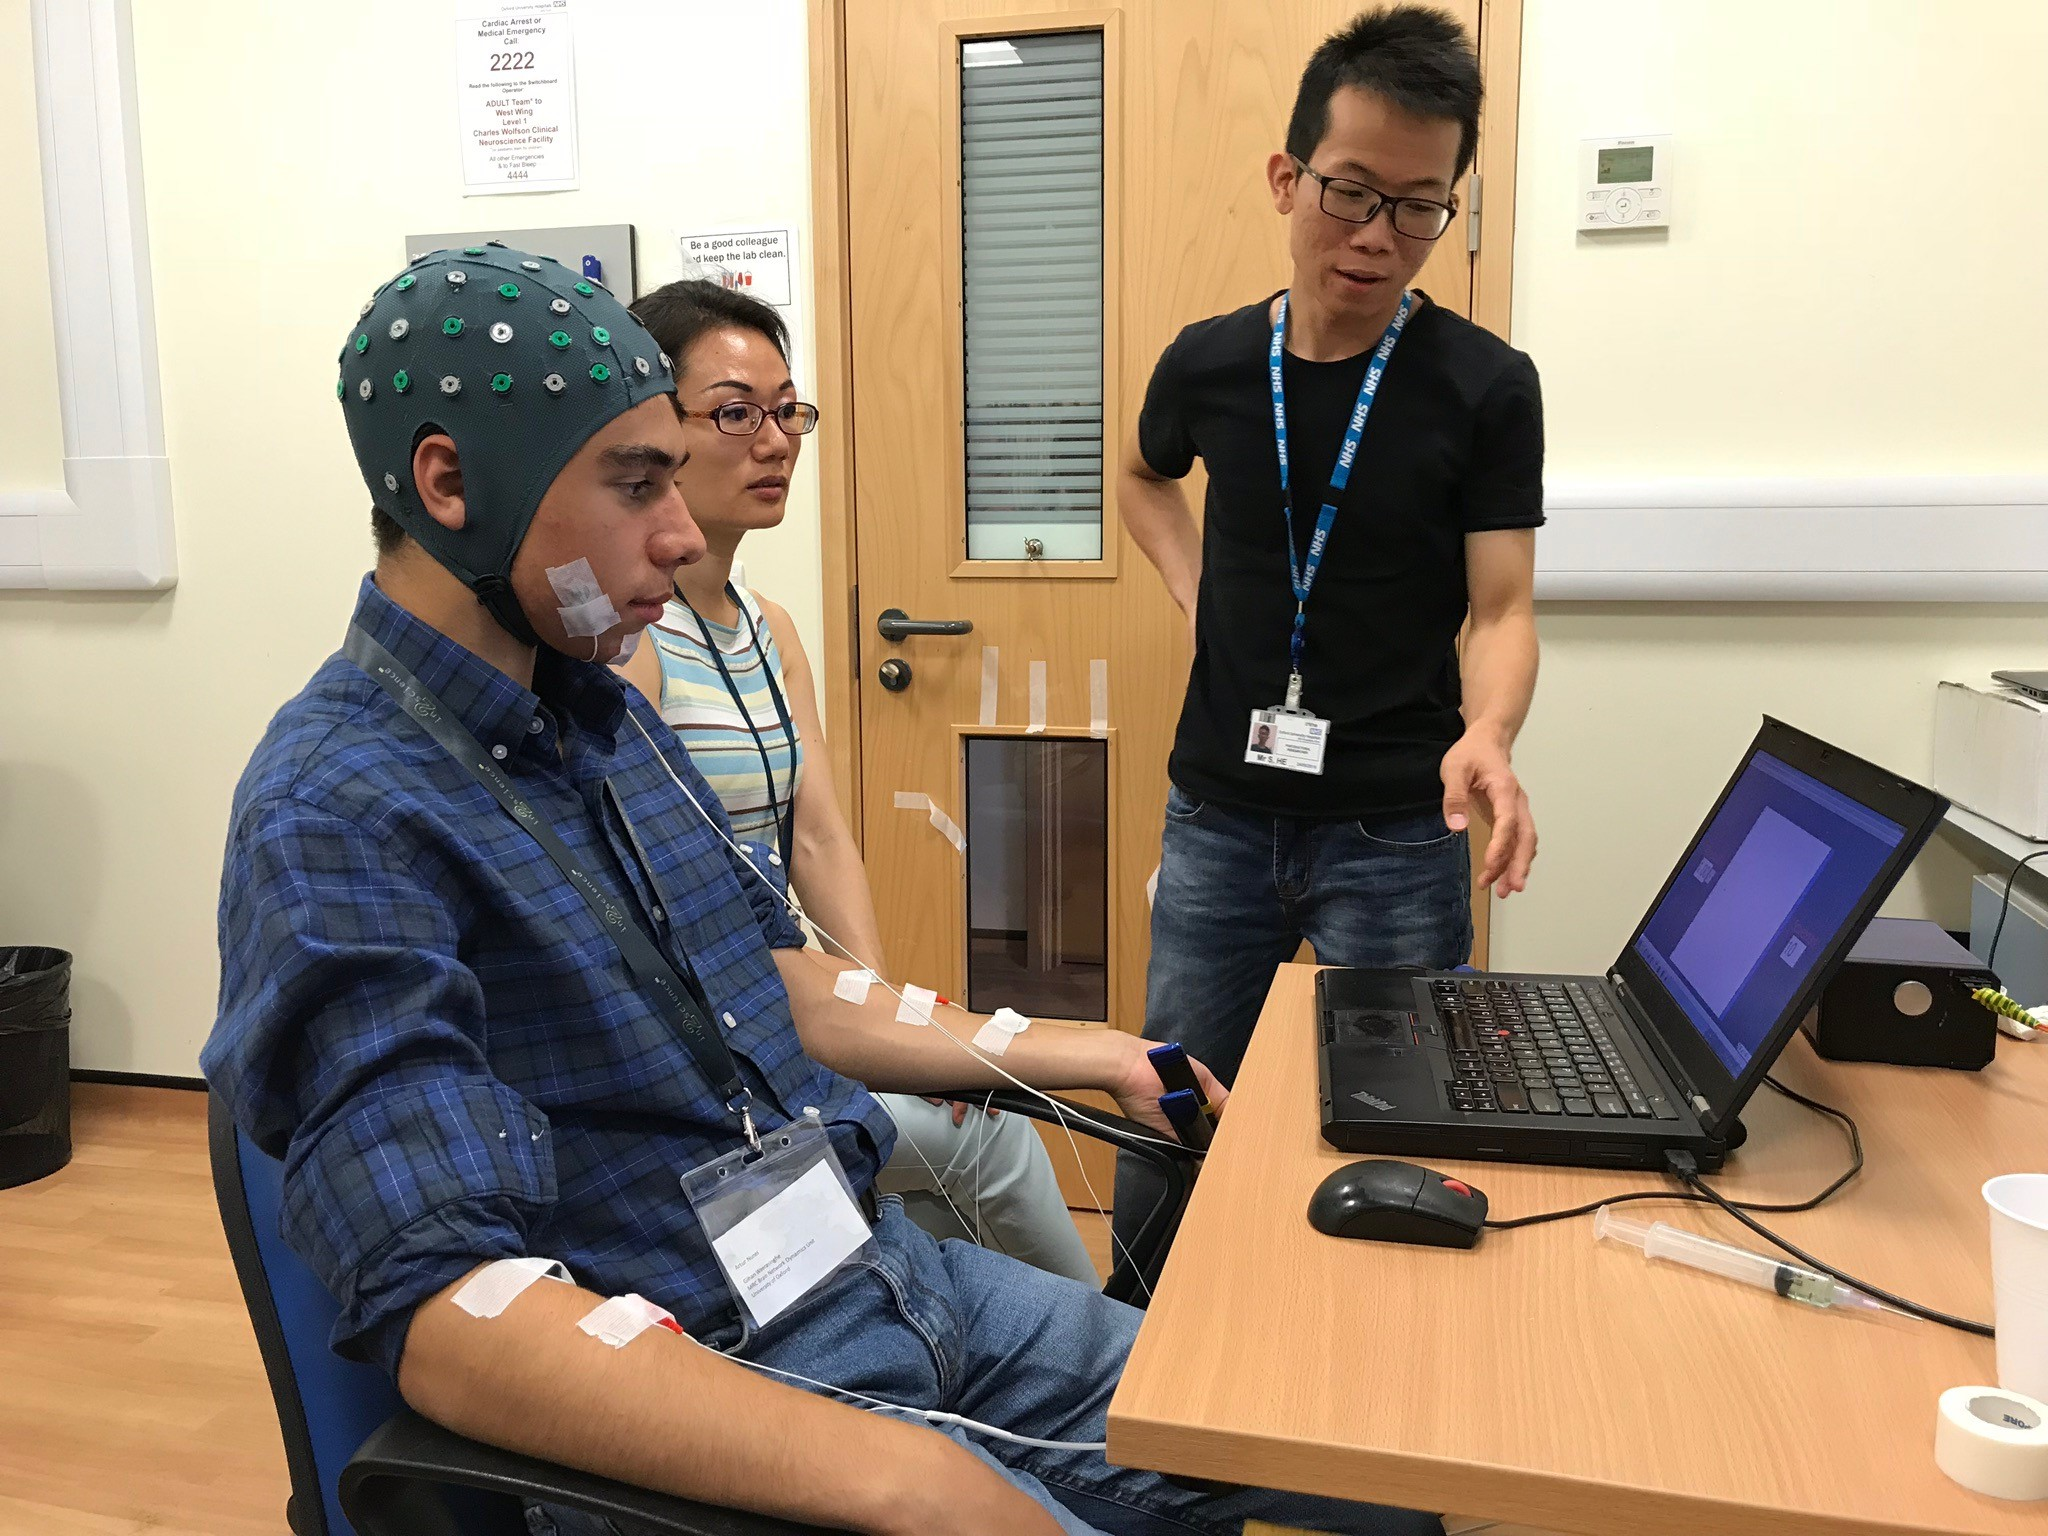 In2scienceUK student Artur records his own brain and muscle activity at the MRC BNDU, guided by Unit scientists Huiling Tan (seated) and Shenghong He.